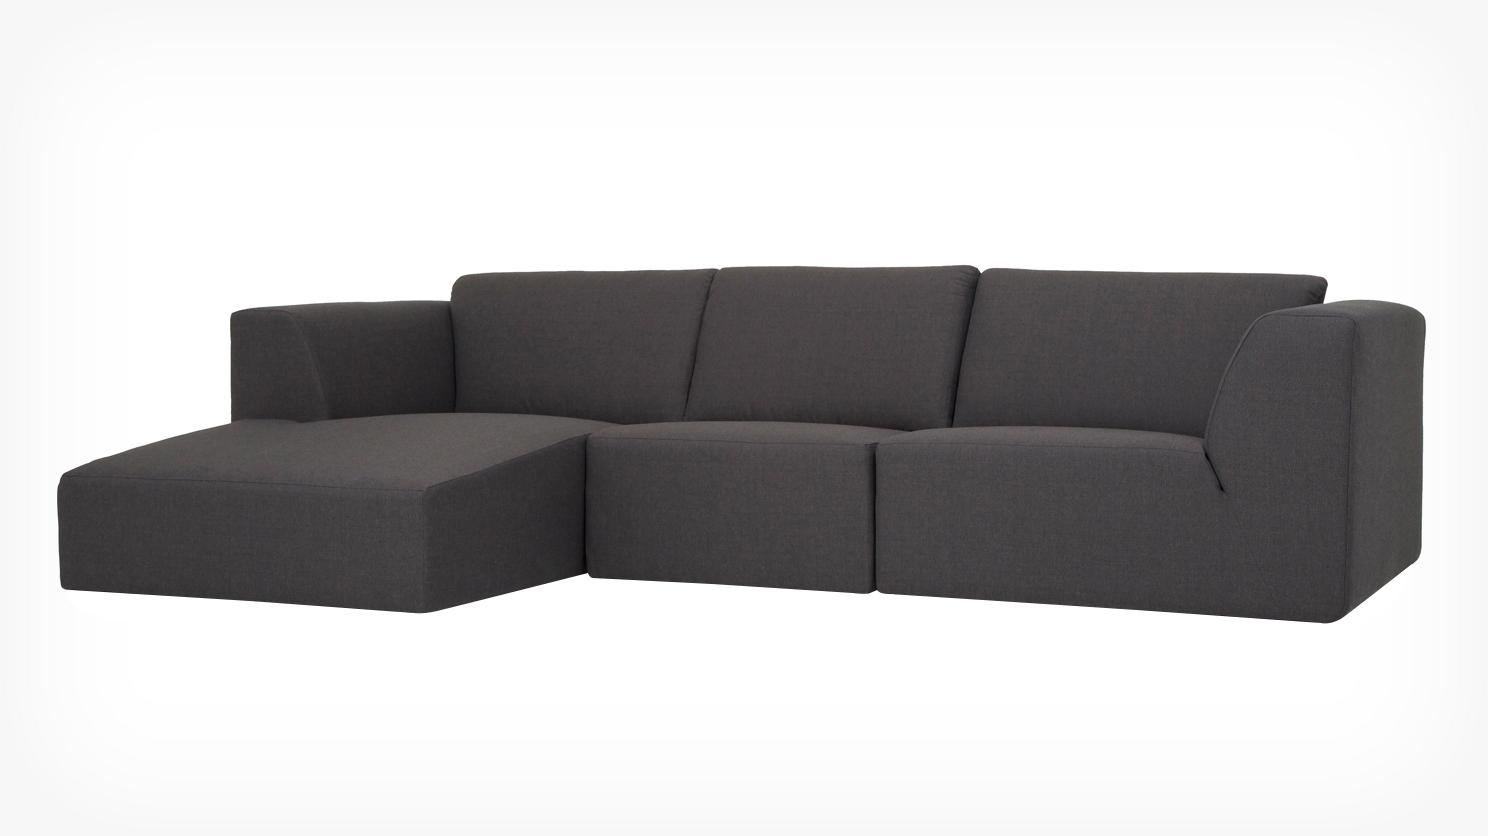 Eq3 | Living > Seating > Sectionals In 2 Seat Sectional Sofas (Image 5 of 15)